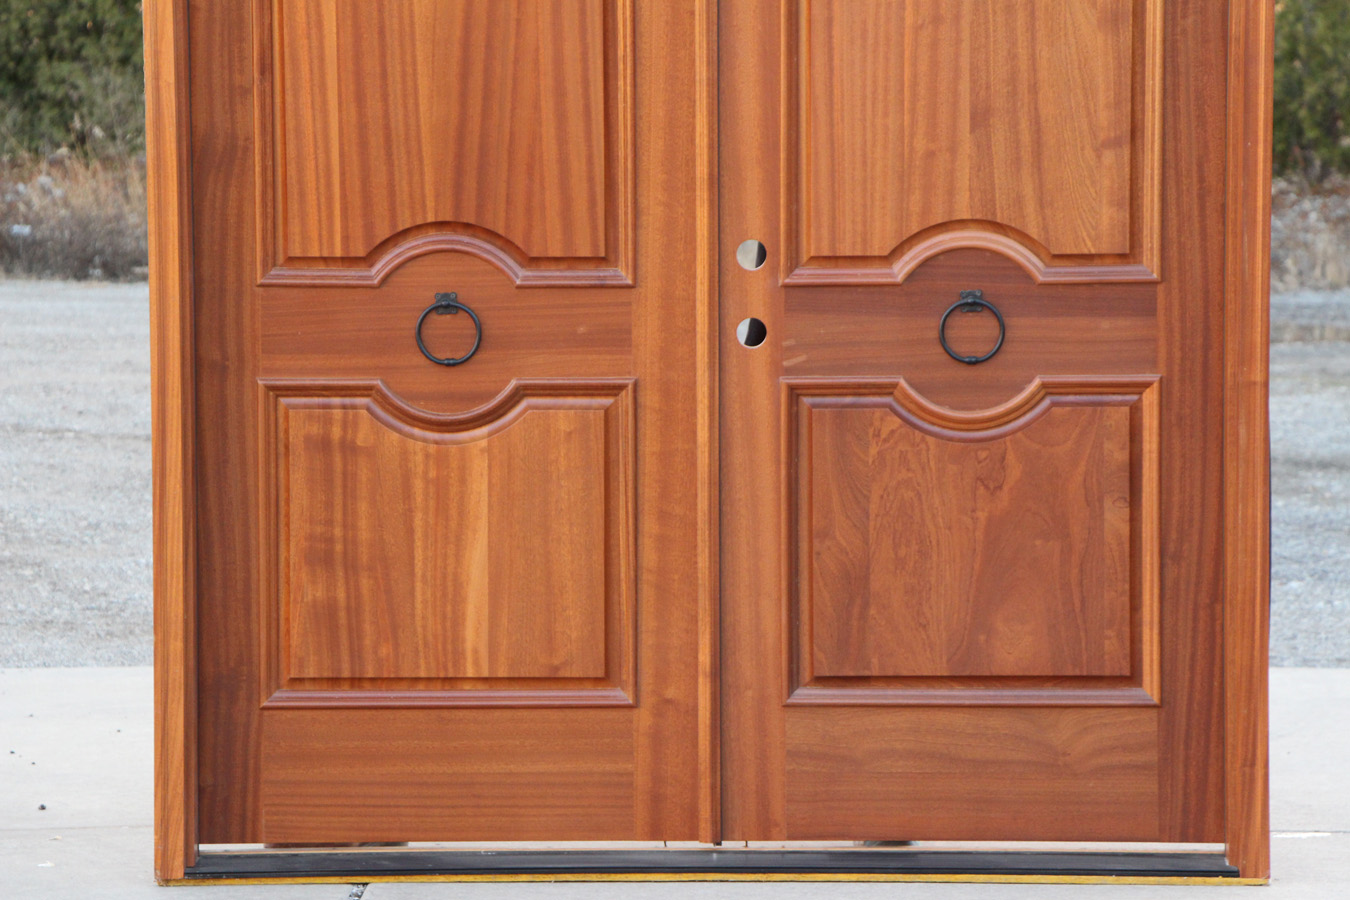 900 #975734 Arched Double Doors Exterior Mahogany pic Arched Double Front Doors 42711350